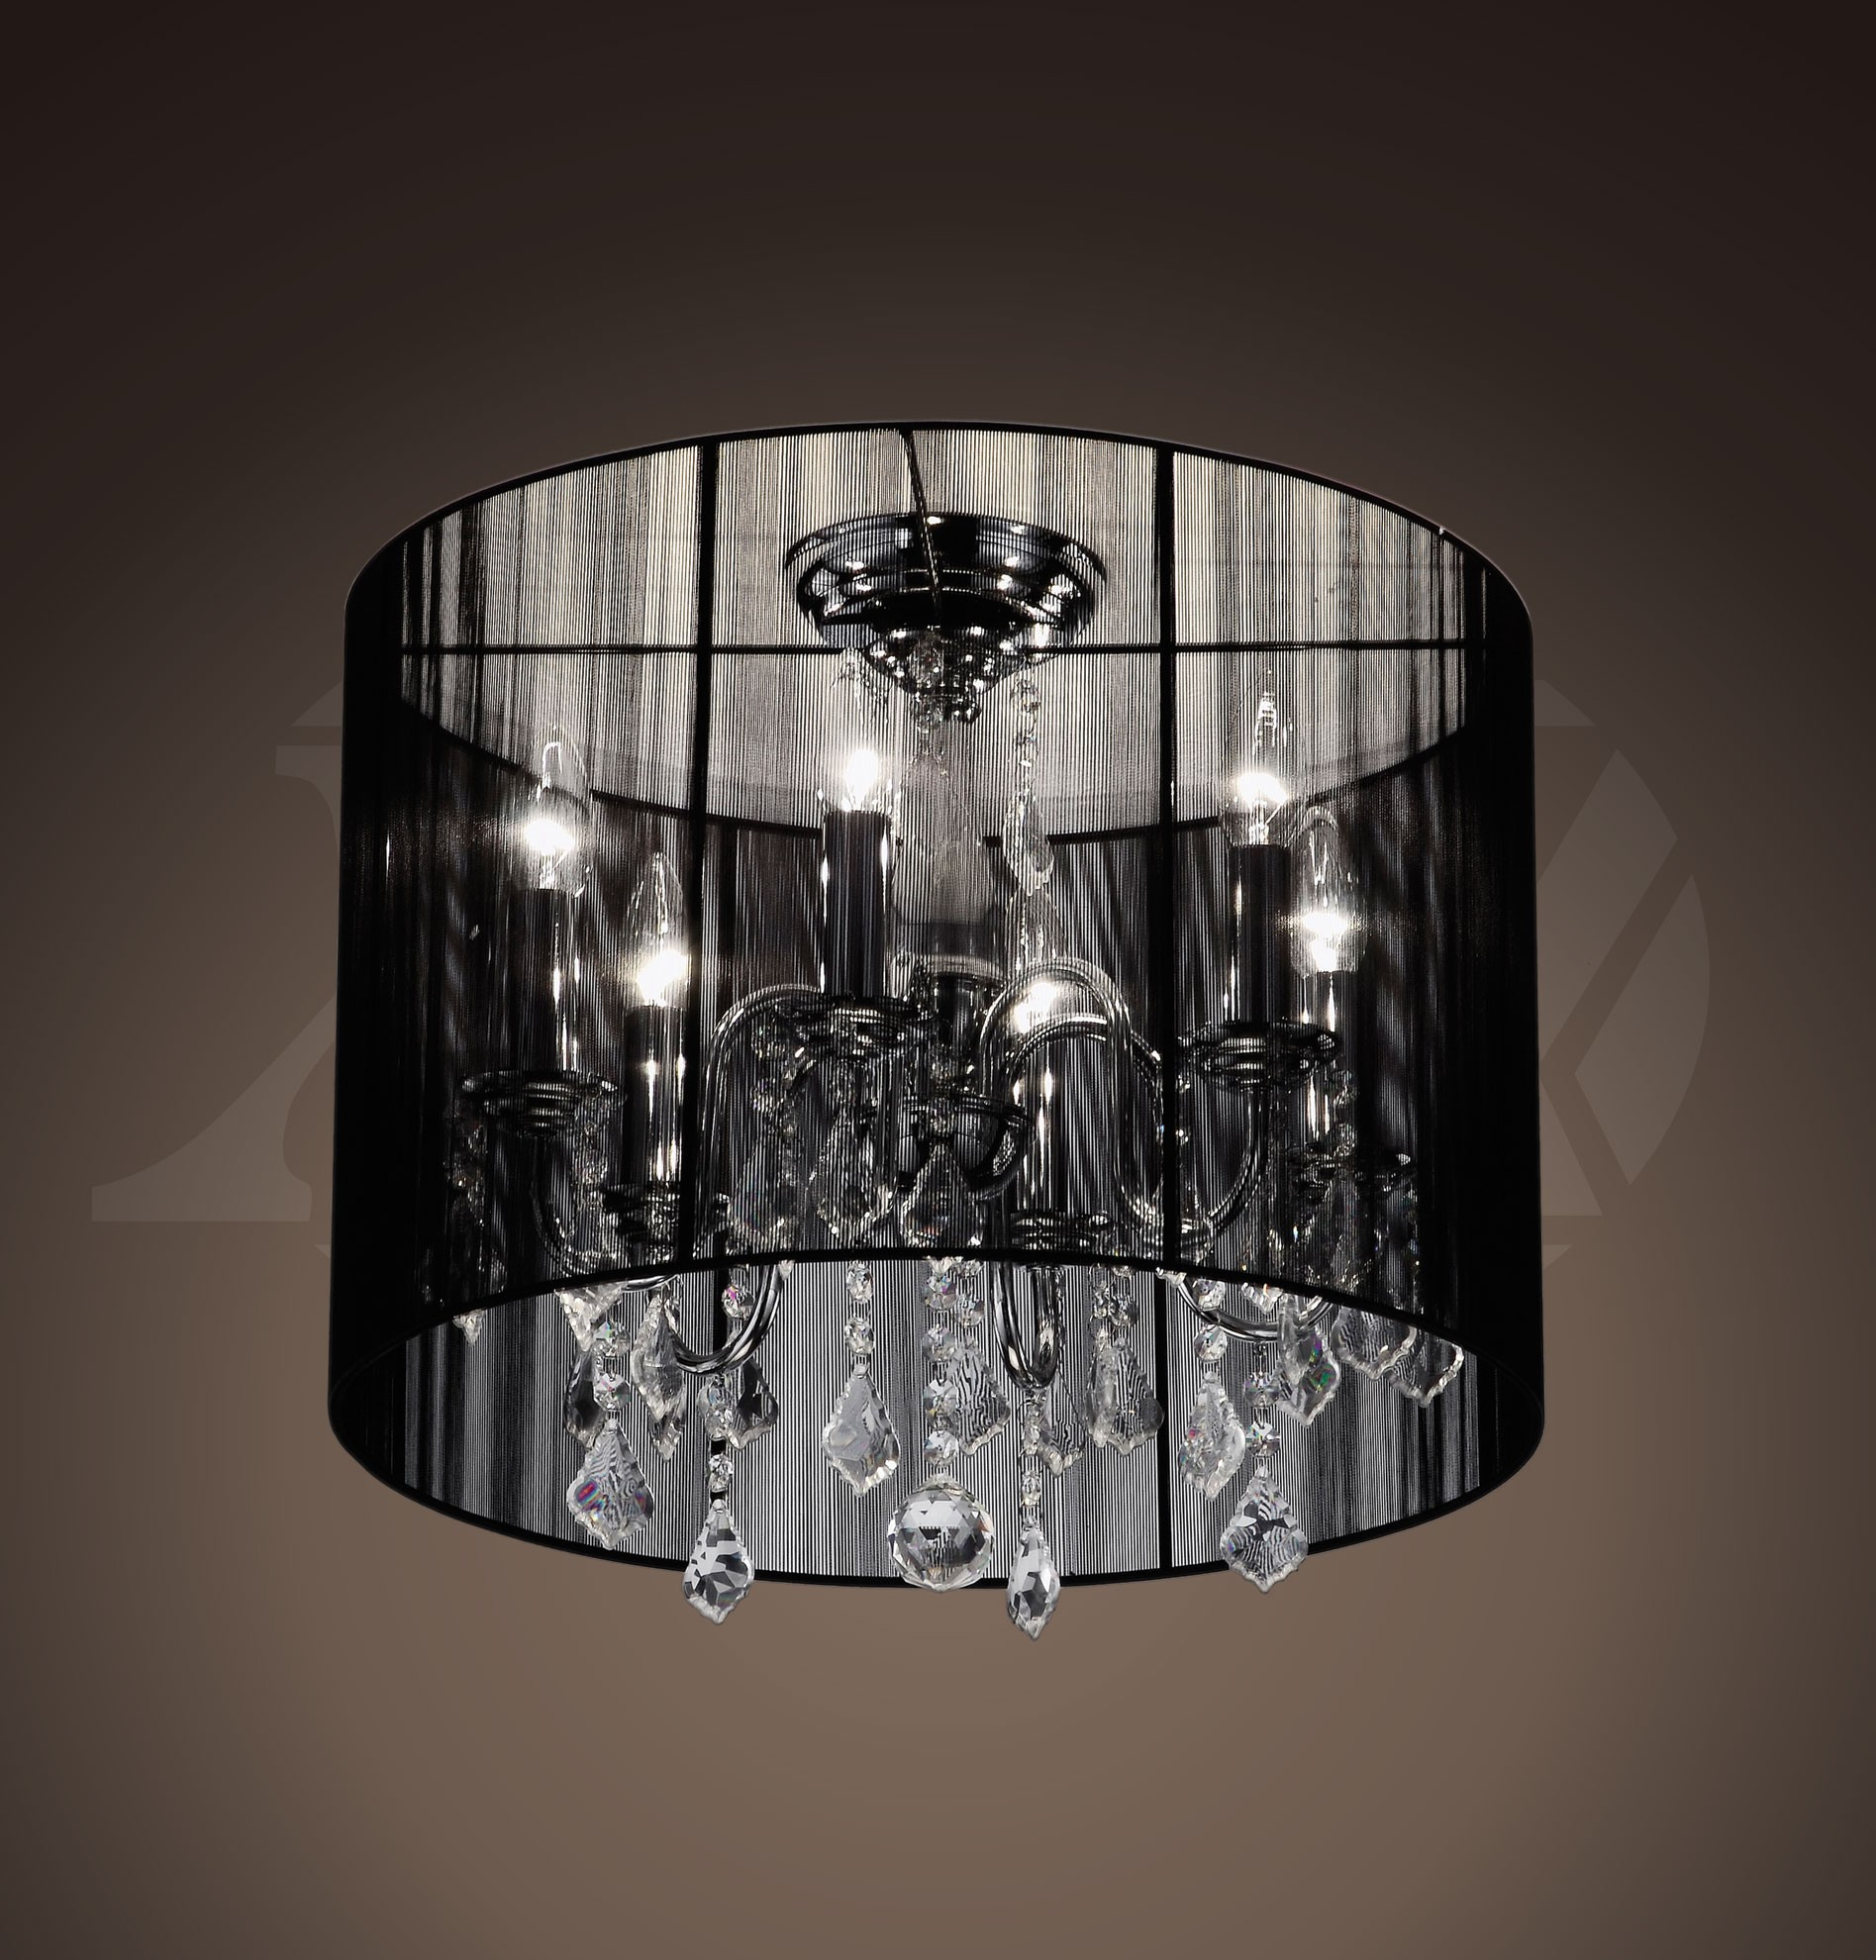 Alondra 6 light black crystal shade chrome ceiling mount chandelier alondra 6 light black crystal shade chrome ceiling mount chandelier 9h x mozeypictures Gallery